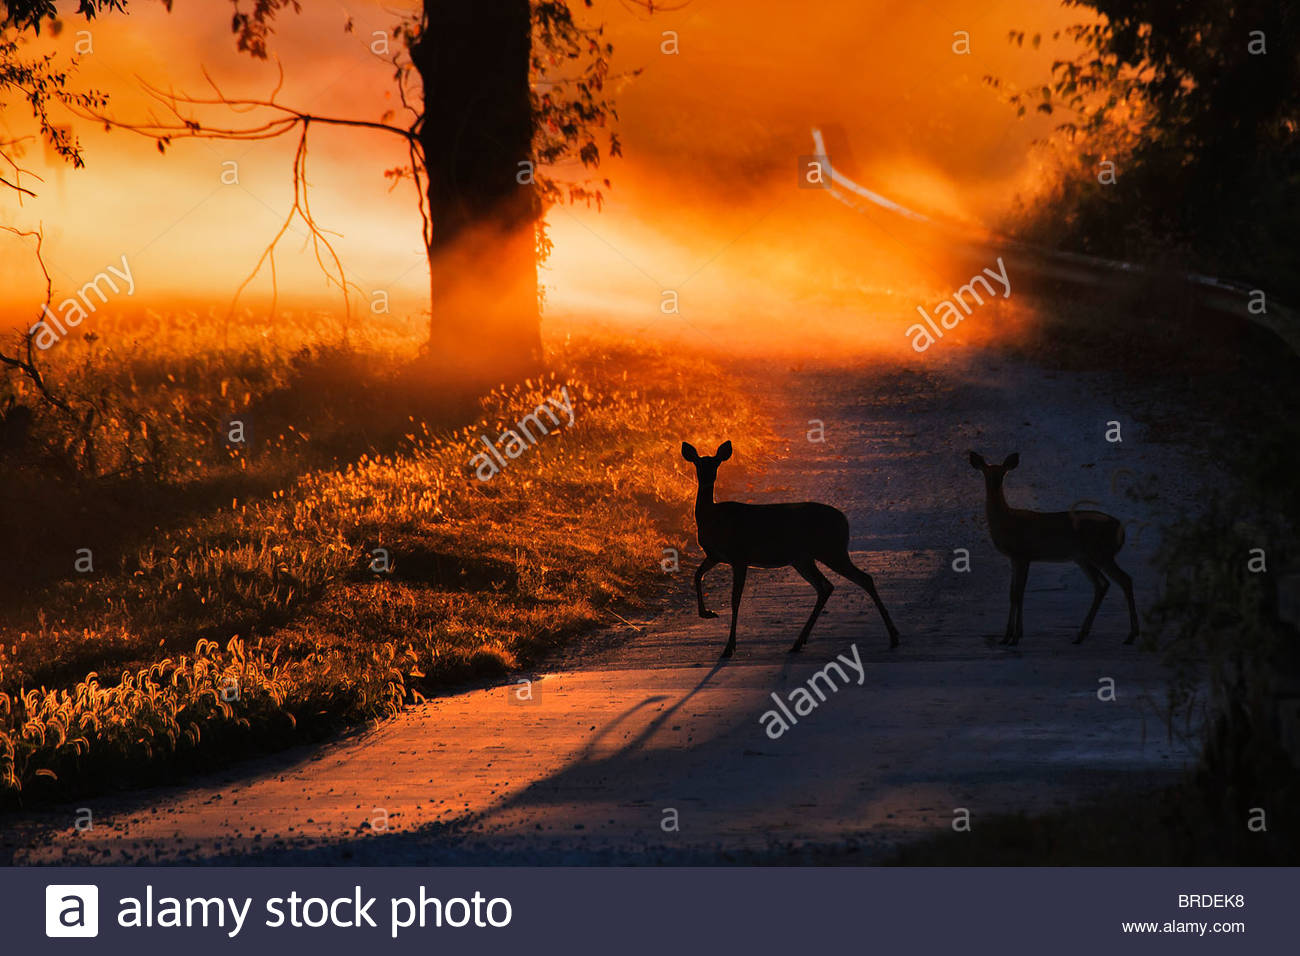 Doe and Fawn White tail Deer Crossing a Country road at sunrise - Stock Image